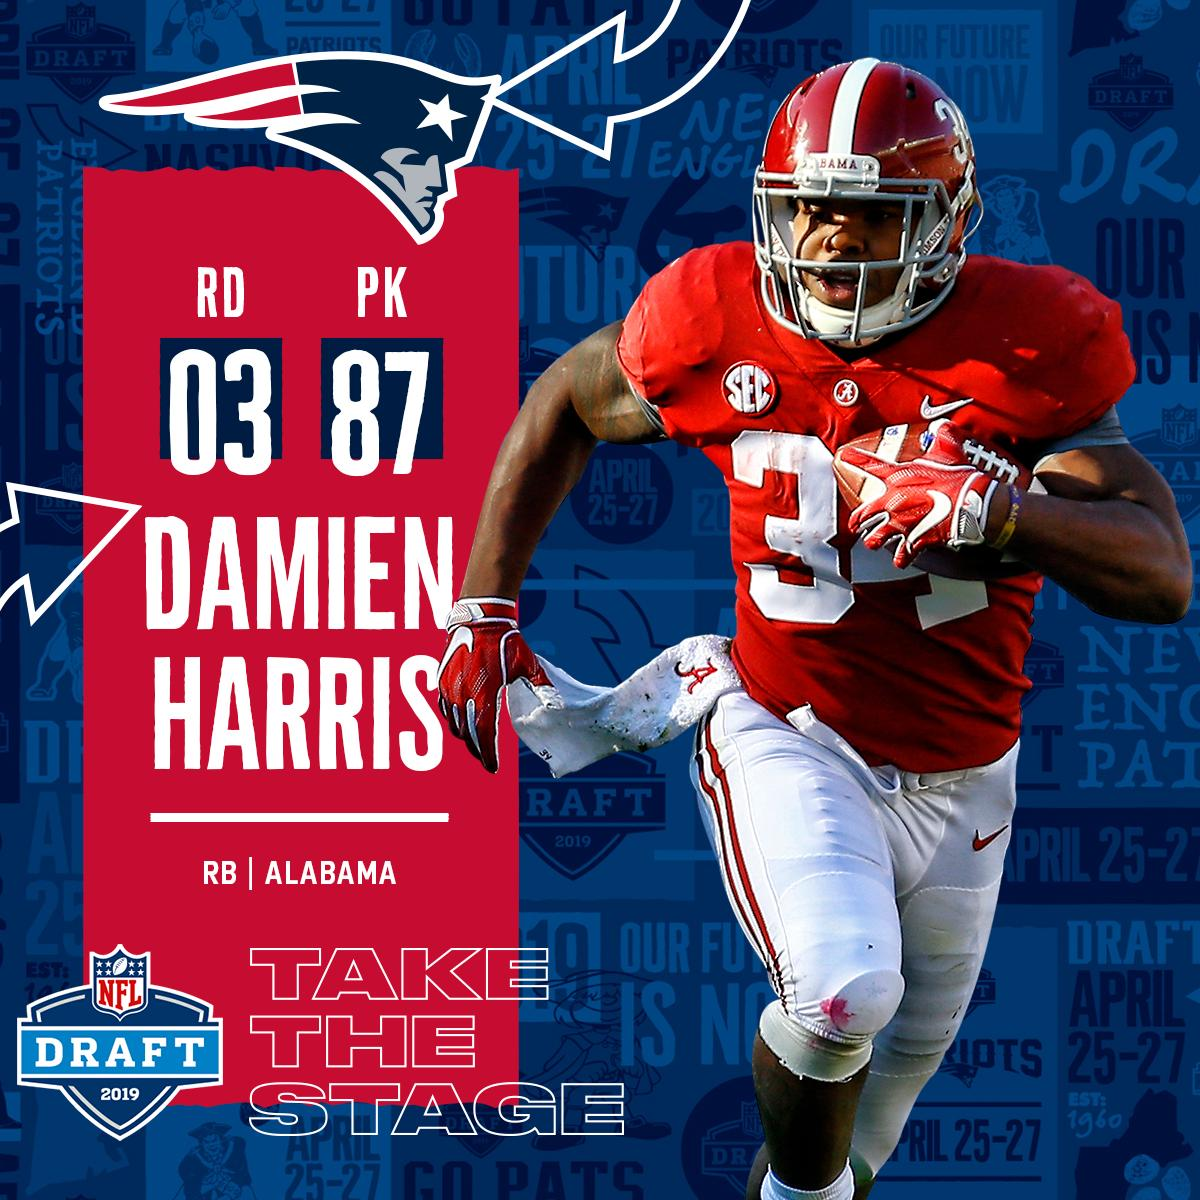 With the #87 overall pick in the 2019 @NFLDraft, the @Patriots select RB Damien Harris! #NFLDraft